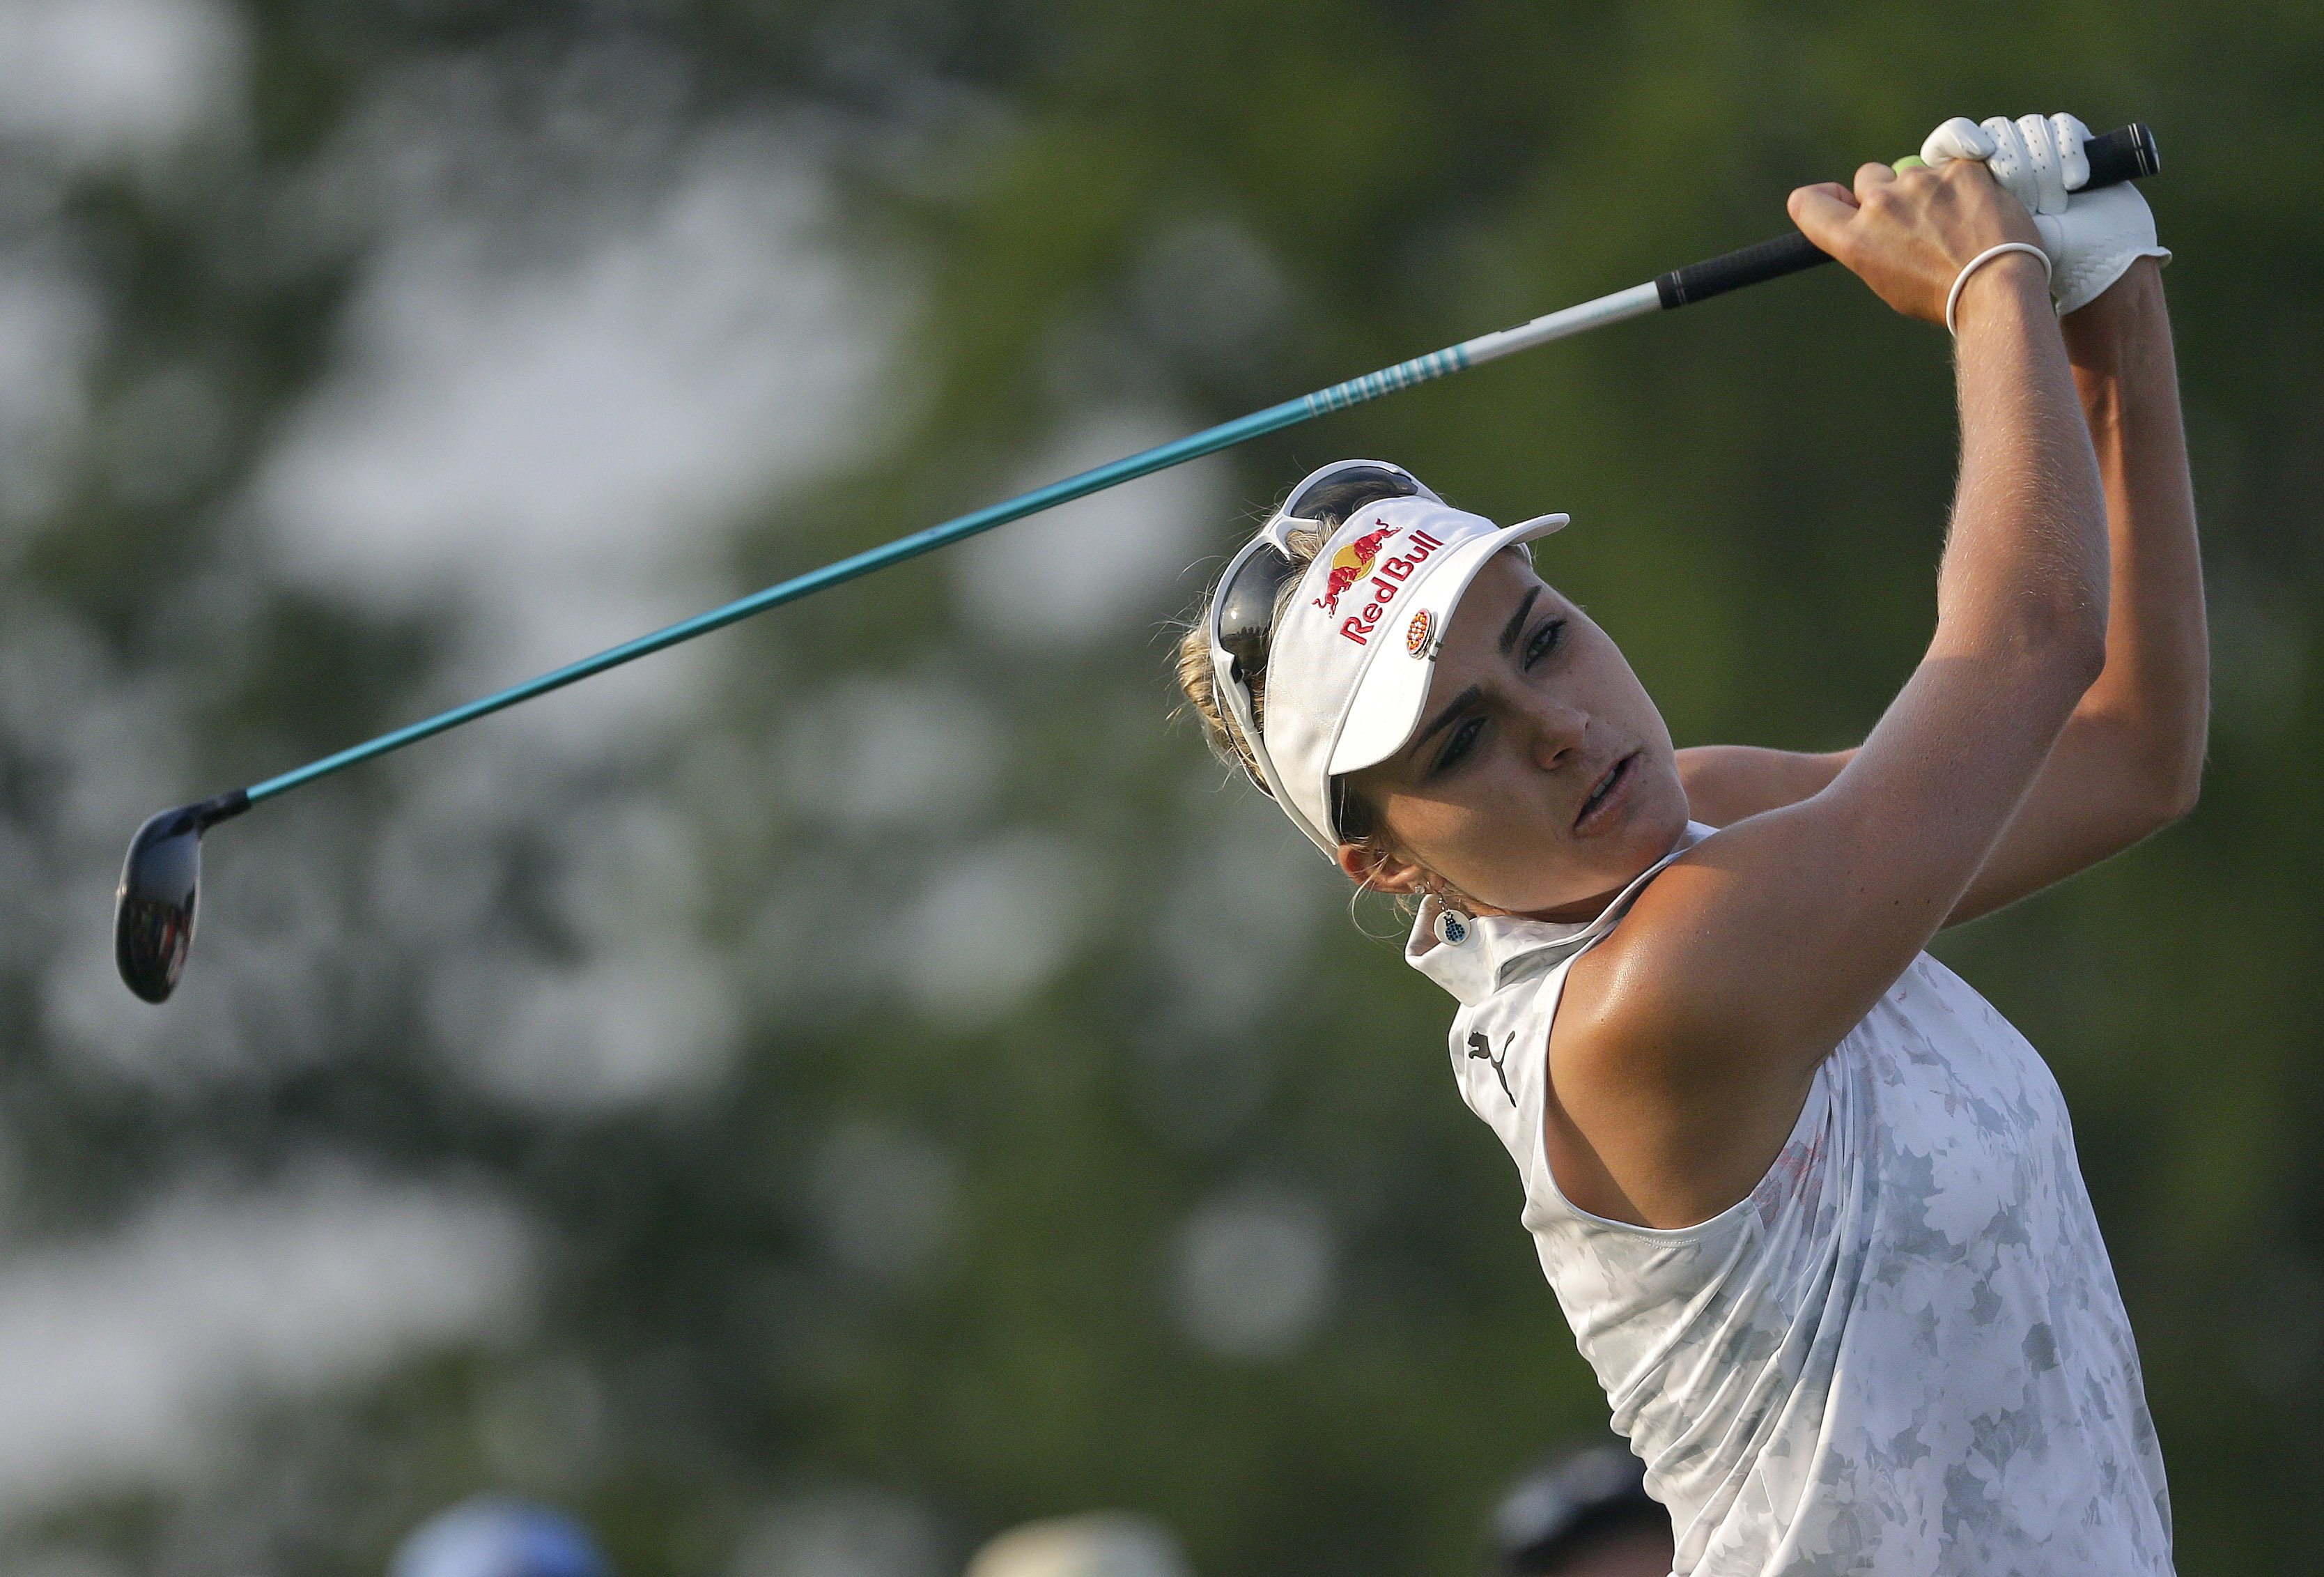 Lexi Thompson tees off on the 10th hole during the first round of the U.S. Women's Open Golf tournament Thursday, July 13, 2017, in Bedminster, N.J. (AP Photo/Seth Wenig)